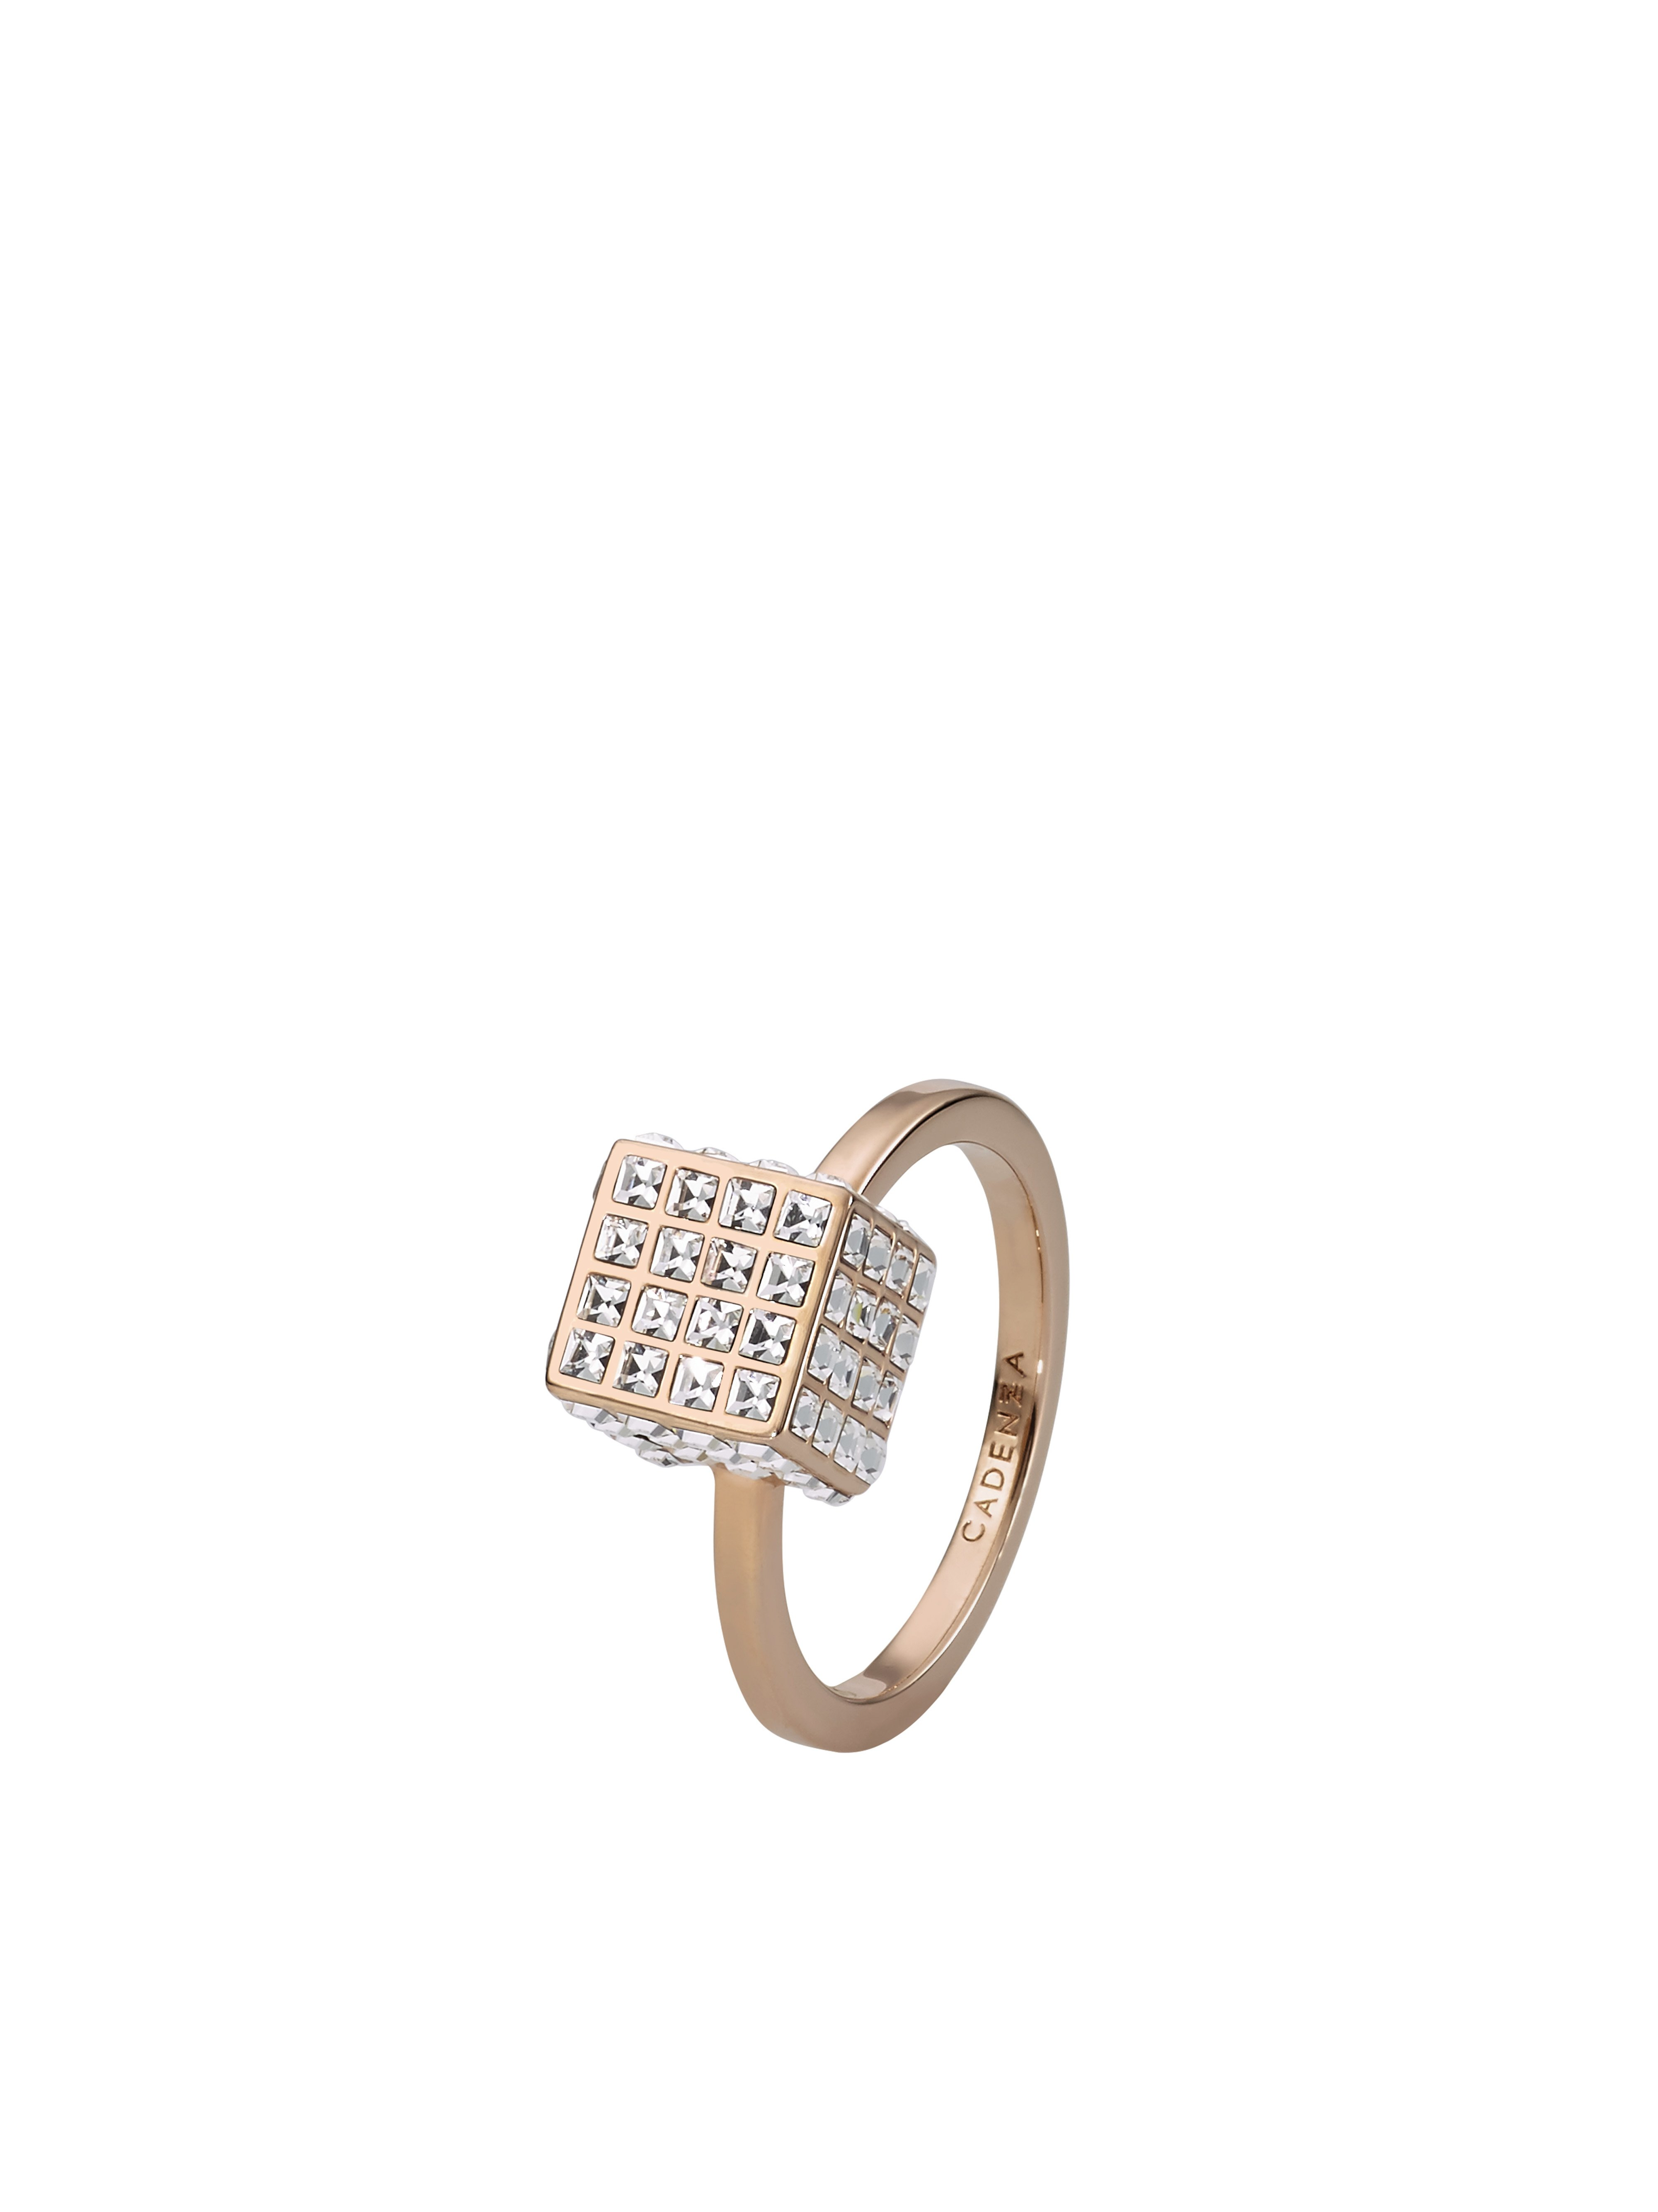 M5281017_FW16_Cadenzza_Elementary_Cube_ring_crystal_rose_gold_plated